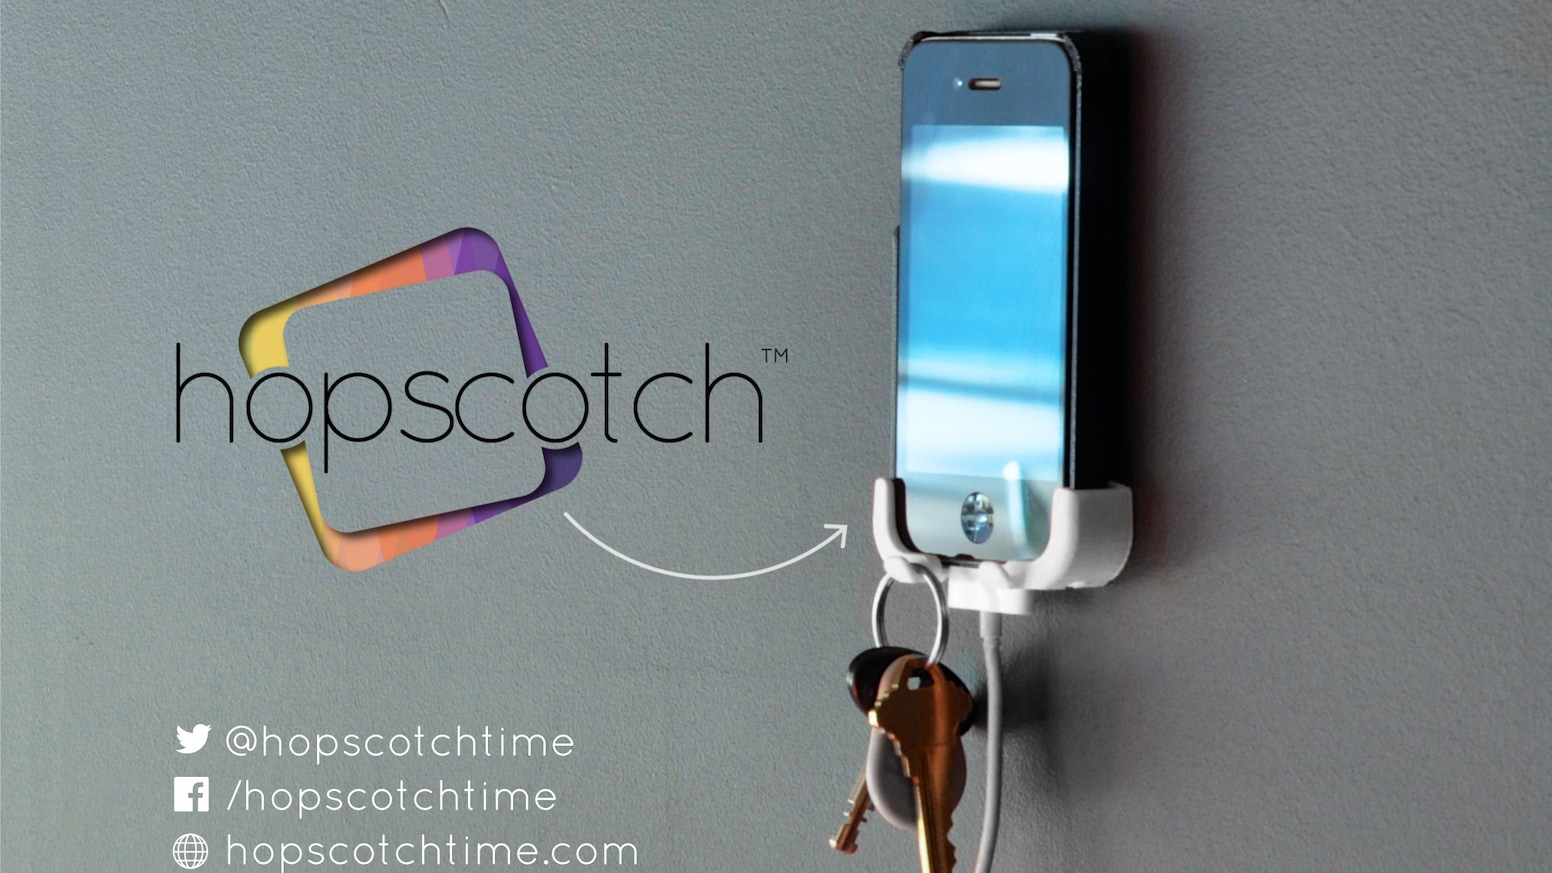 Hopscotch is a simple holder for cell phones and keys, designed to be out of the way yet always there when you need it.